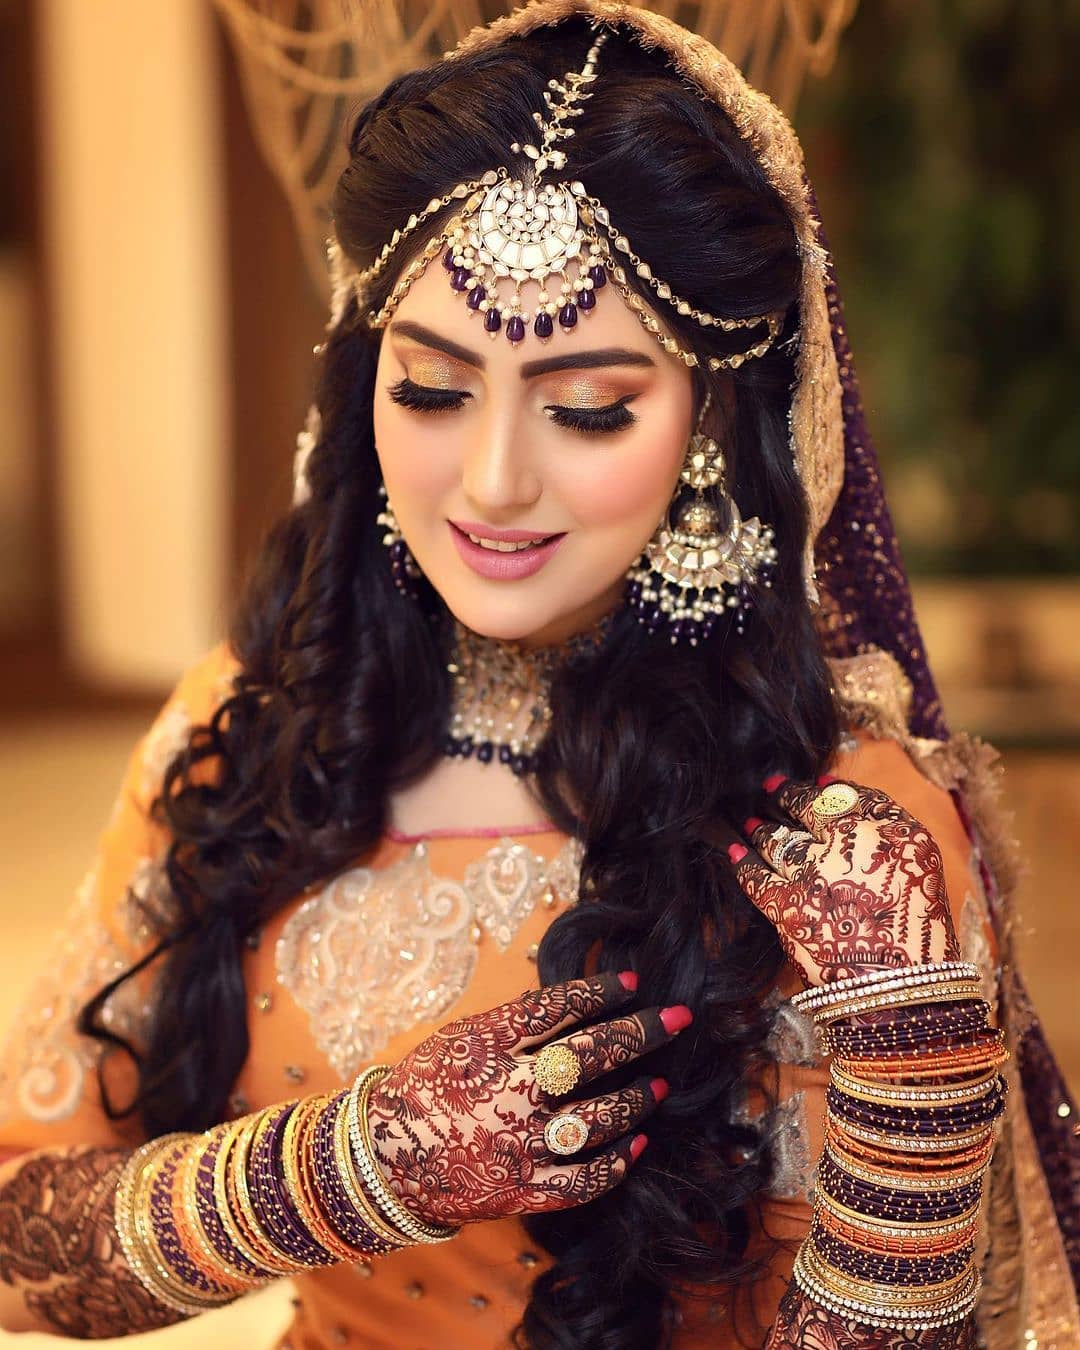 Beautiful Bridal DP For Facebook Profile Picture